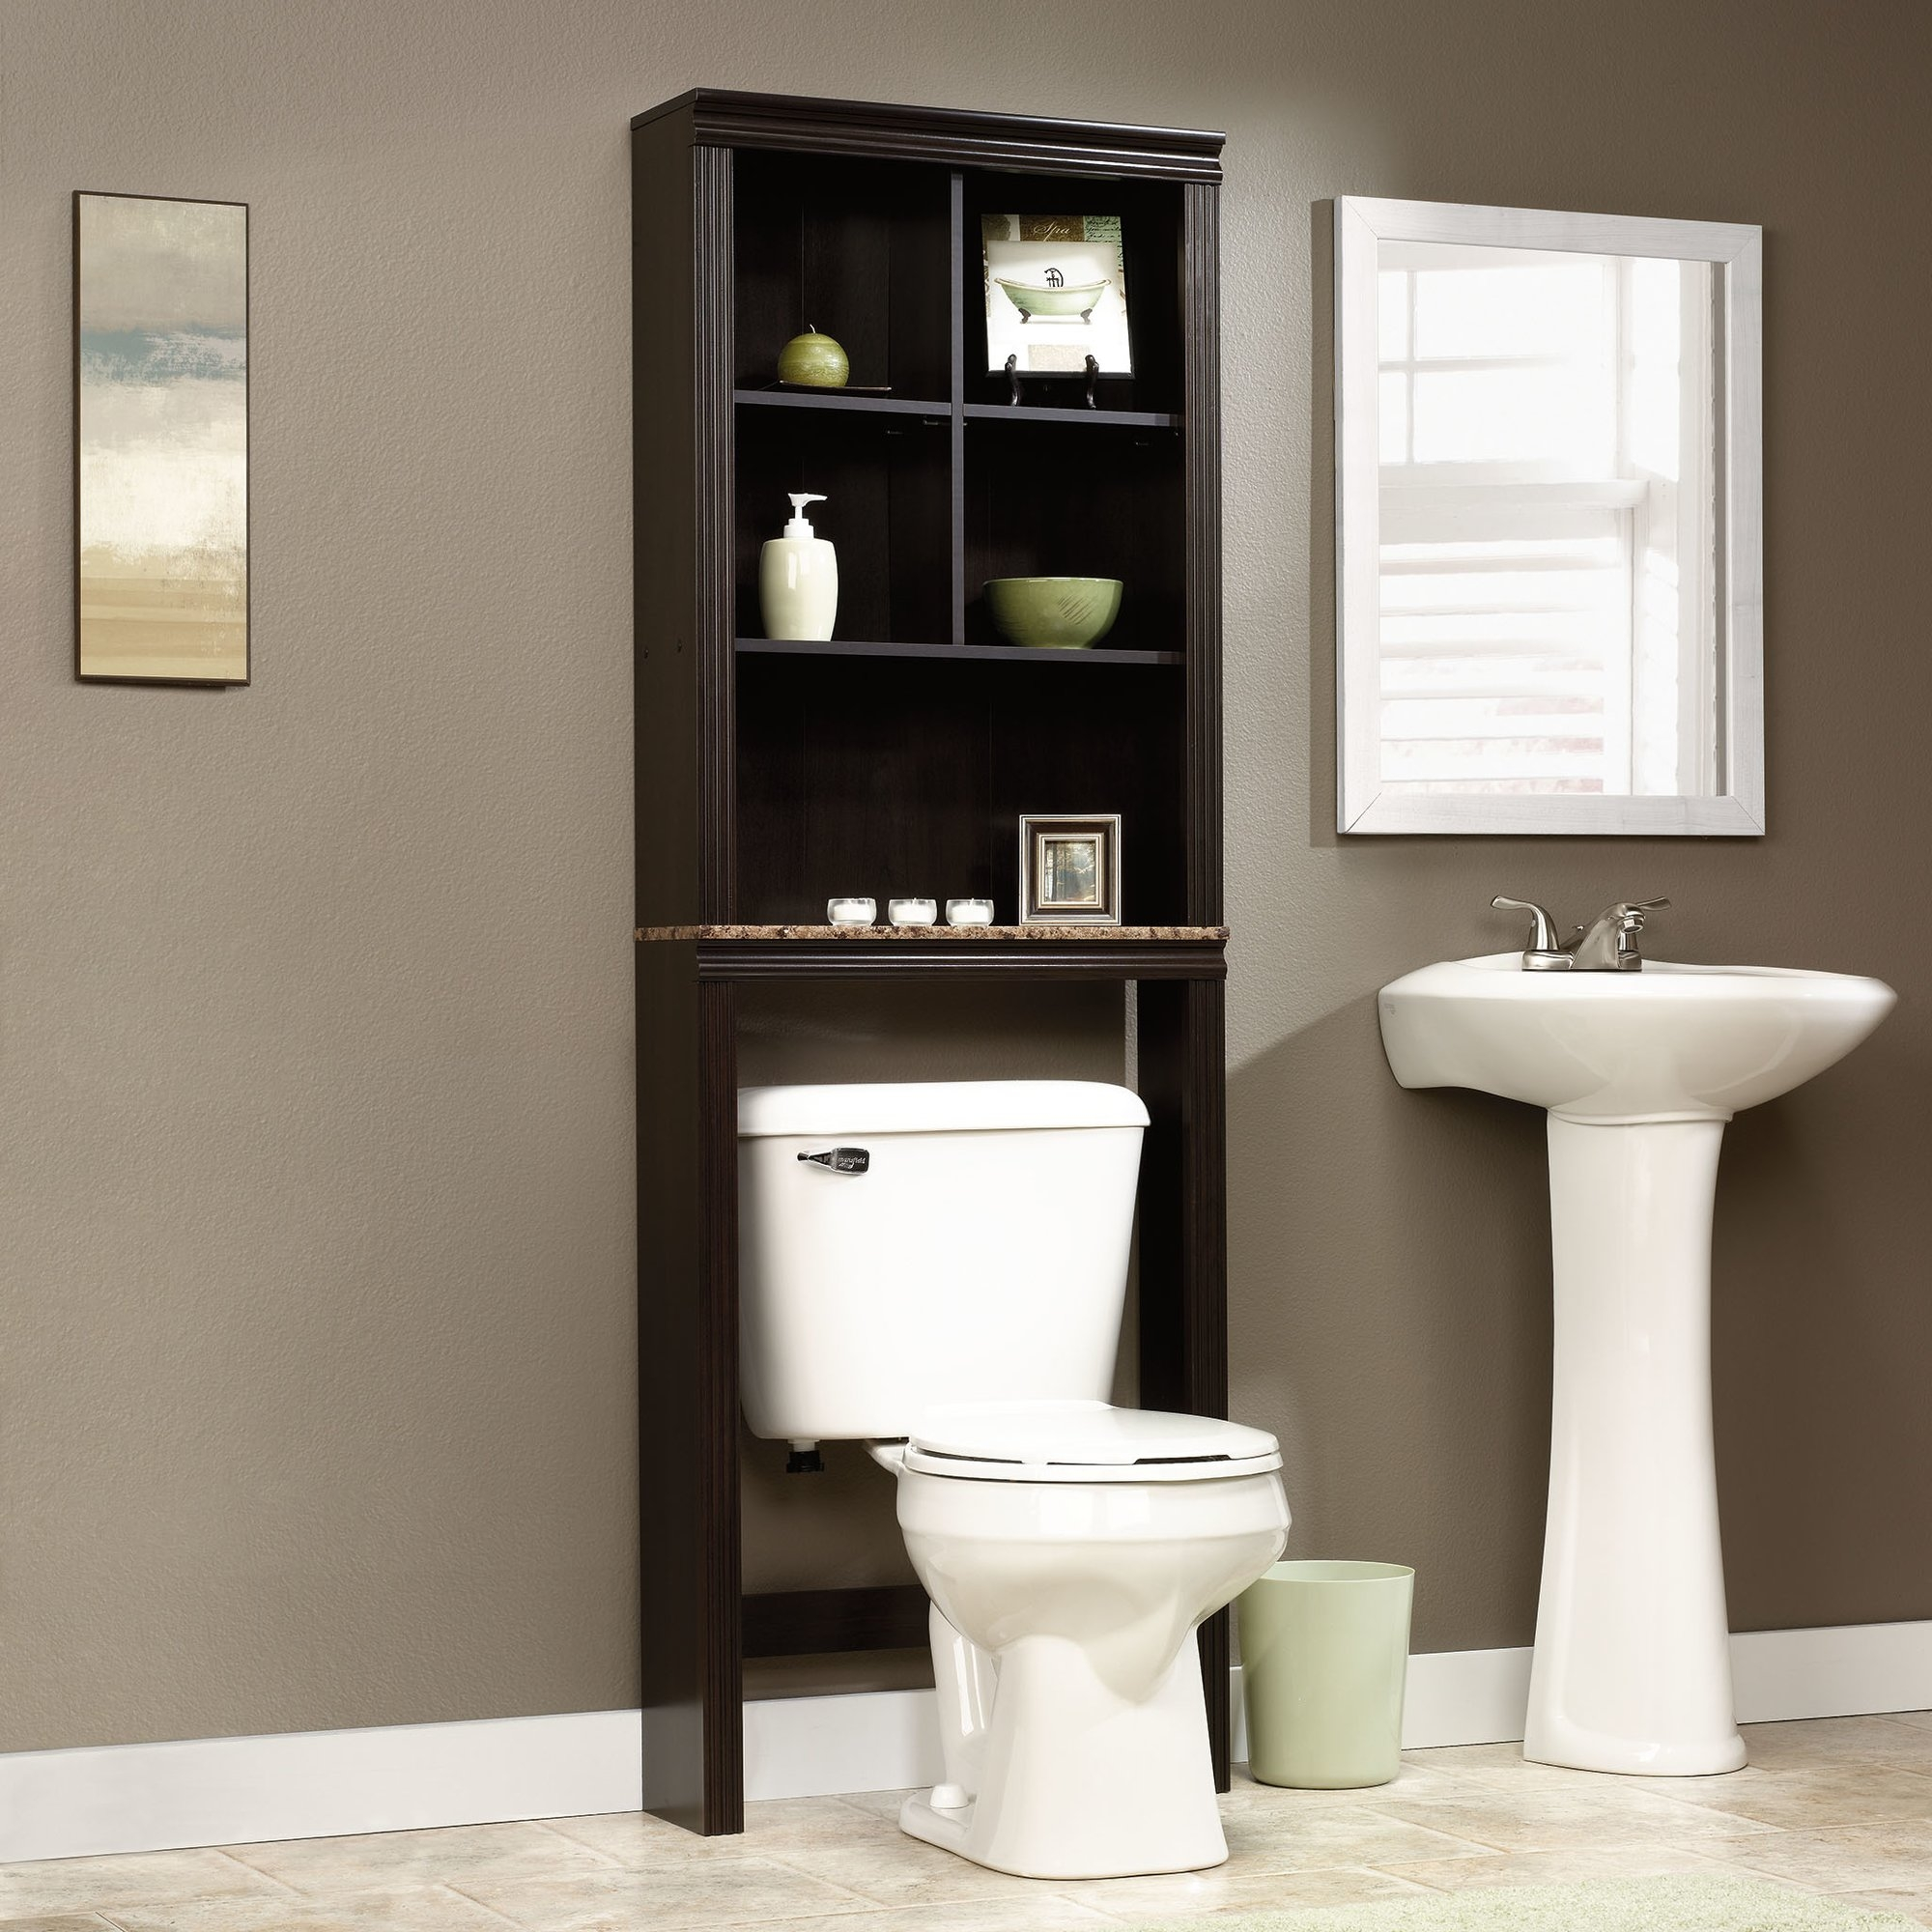 Permalink to Bathroom Storage For Over The Toilet